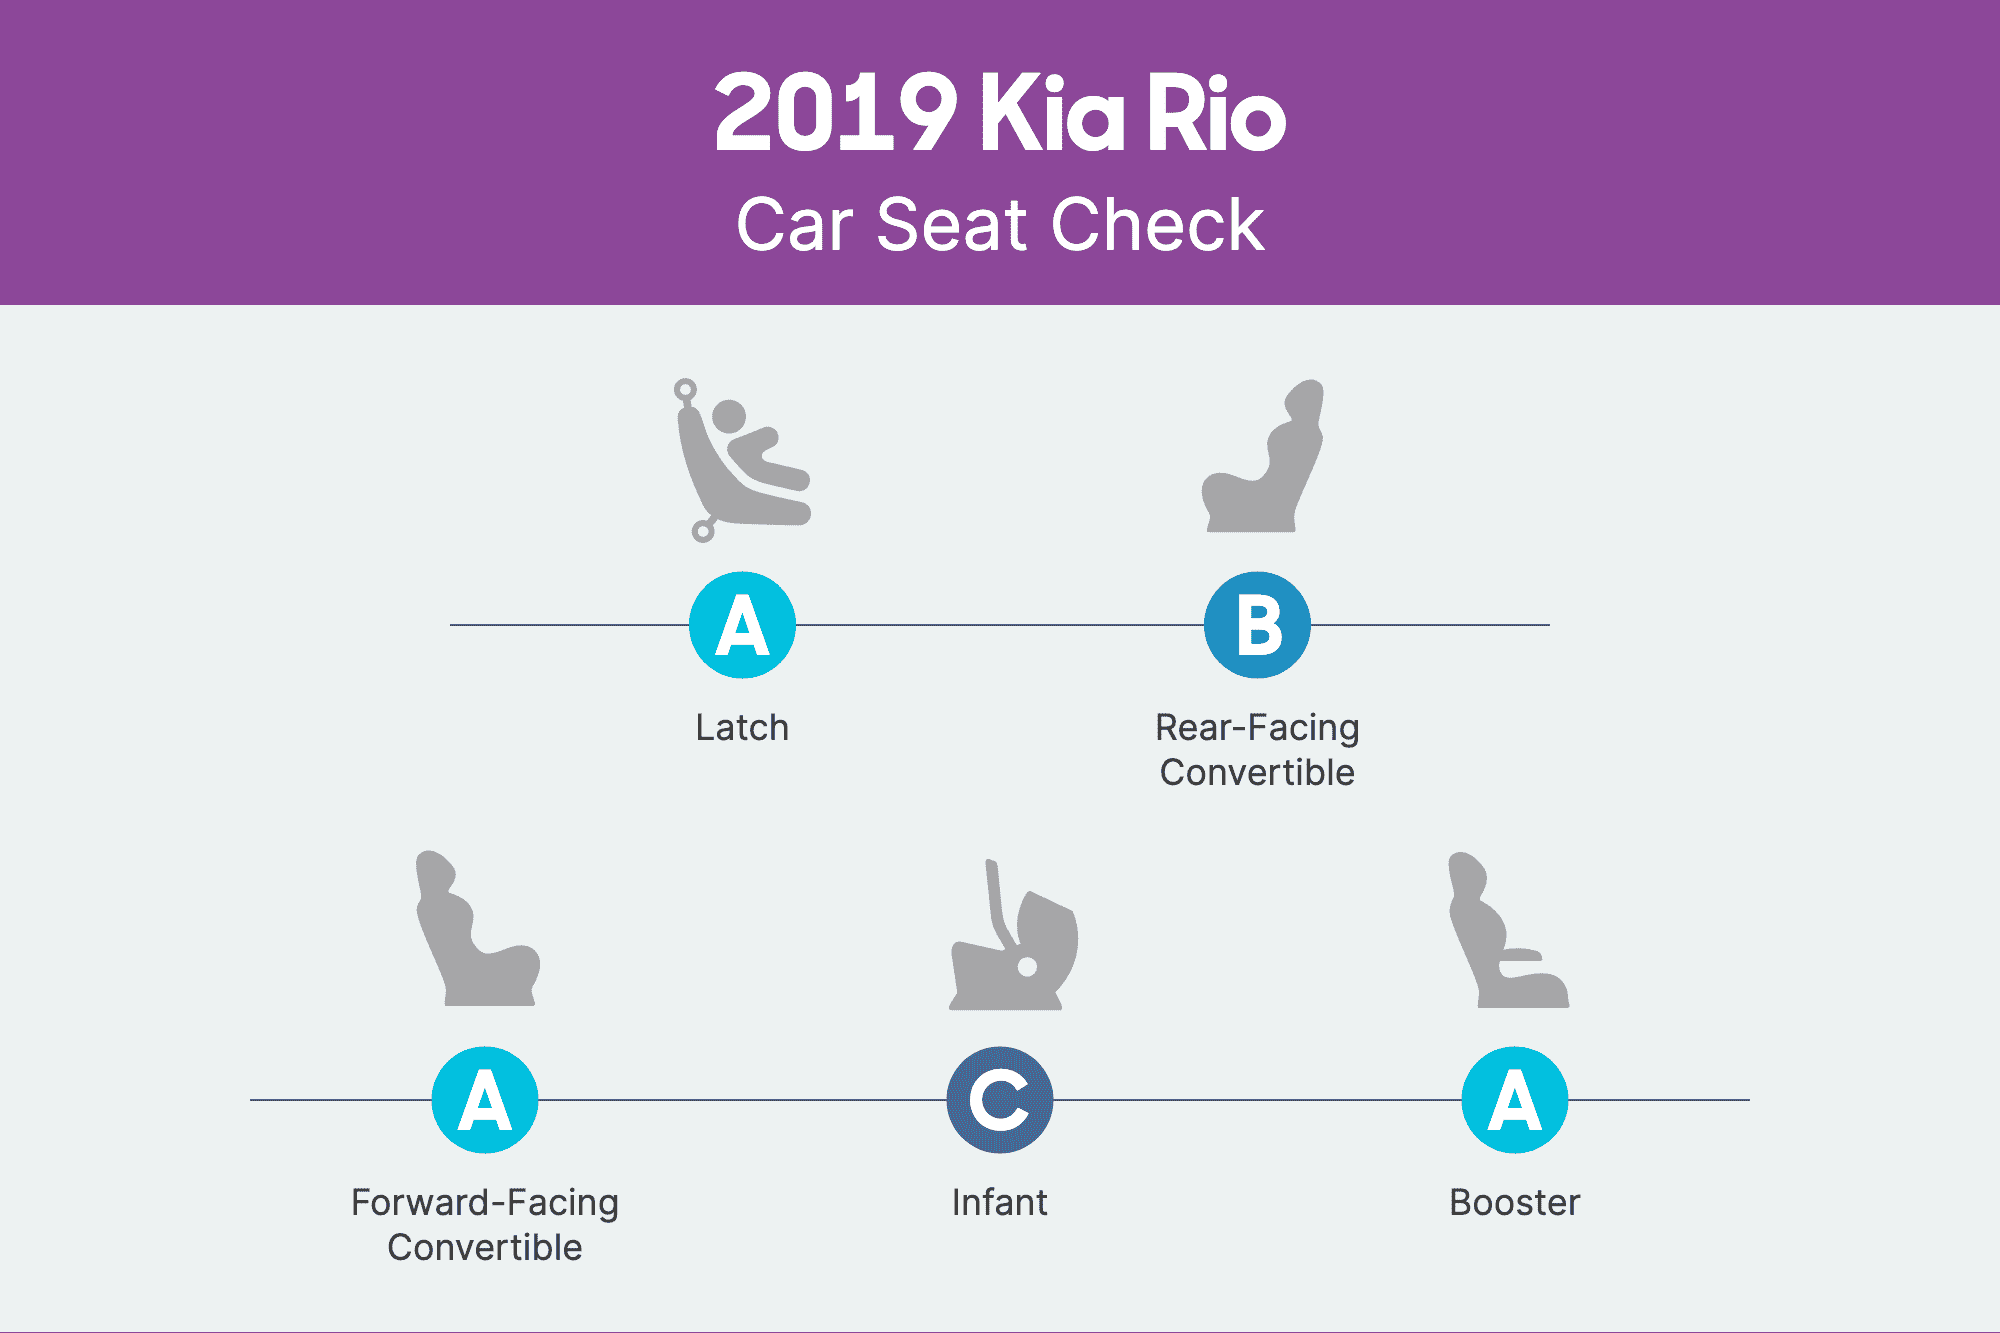 How Do Car Seats Fit in a 2019 Kia Rio?